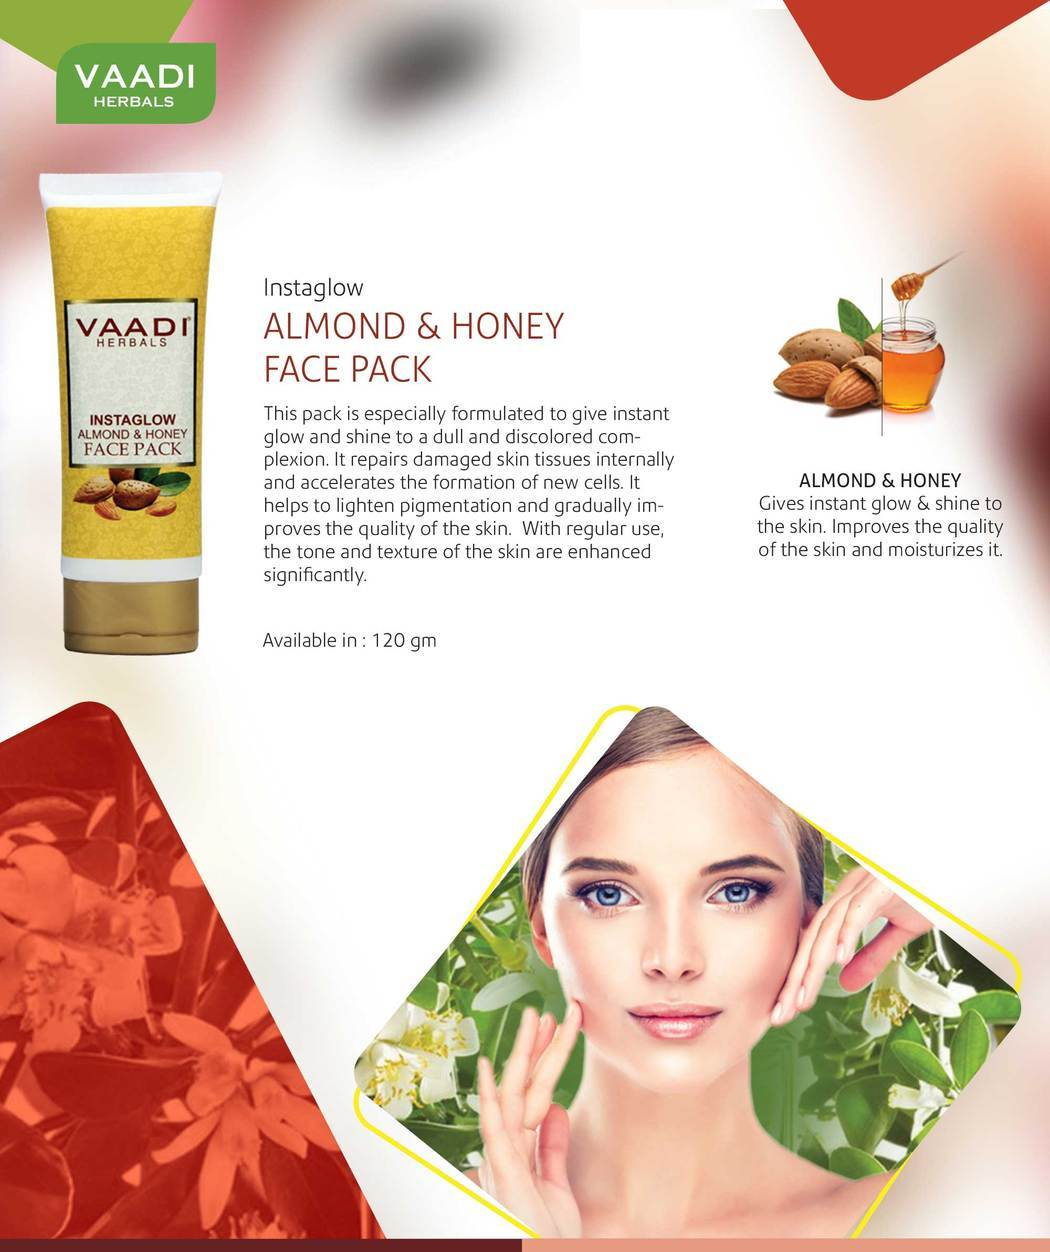 Organic InstaGlow Face Pack with Almond & Honey - Lightens Pigmentation - Gives Instant Glow (2 x 120 gms/ 4.3 oz)